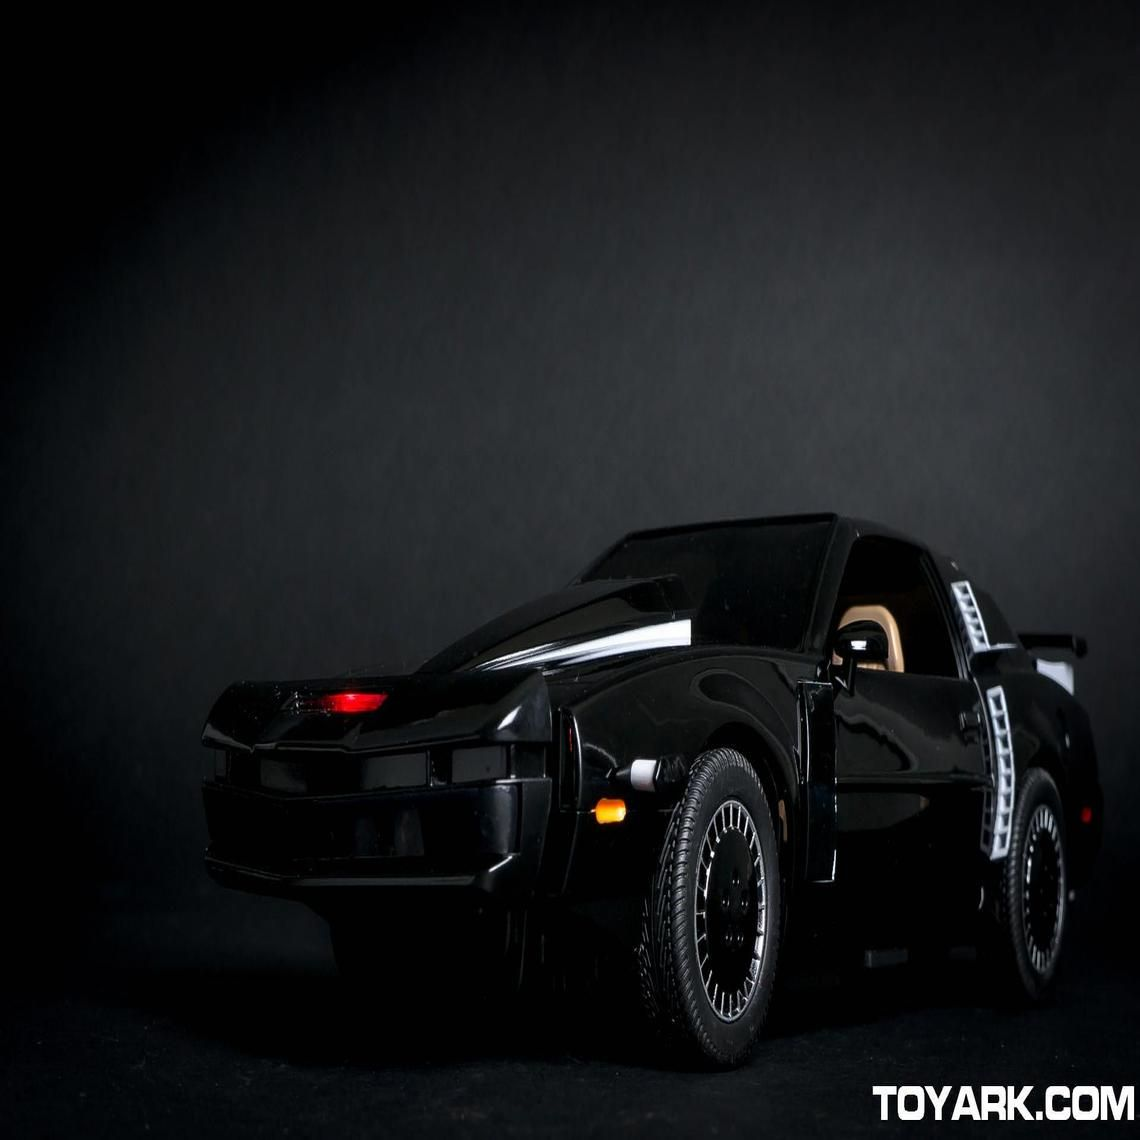 Toys wallpaper images  KNIGHTRIDERSUPER PURSUIT MODE TOY  wallpaper  Pinterest